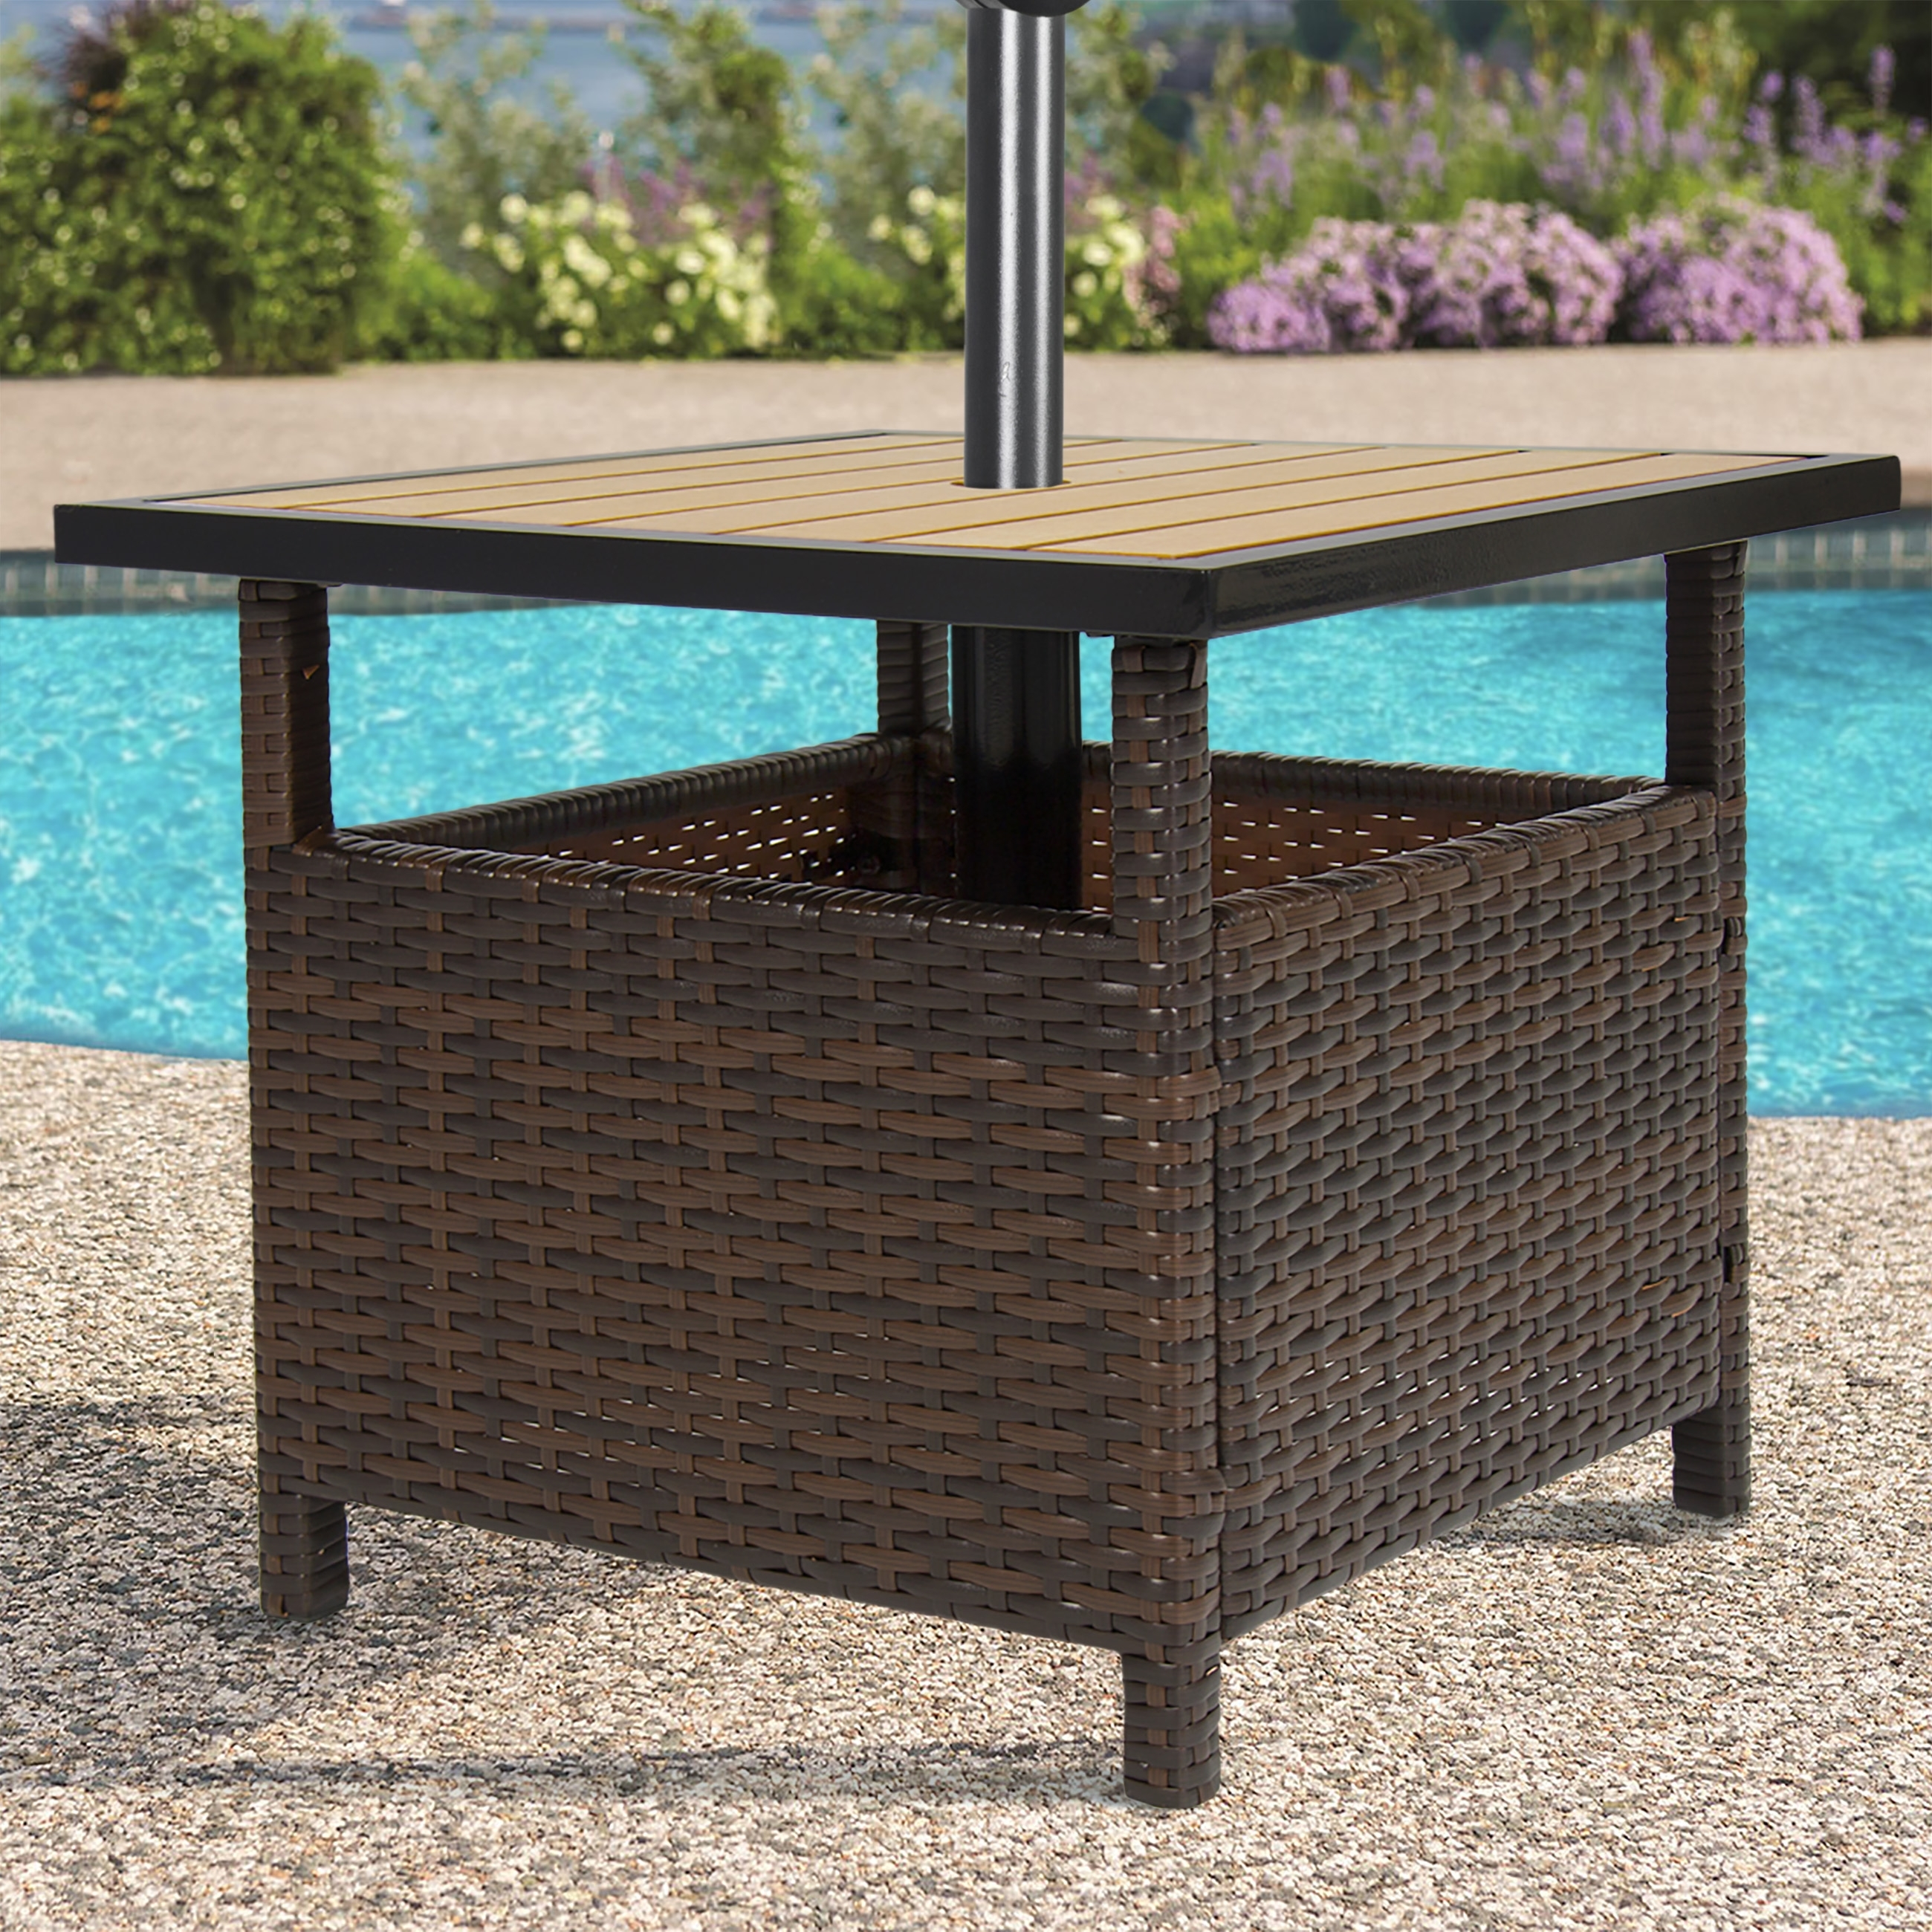 Bestchoiceproducts: Best Choice Products Outdoor Furniture Wicker Inside Most Recent Patio Umbrellas With Accent Table (View 9 of 20)